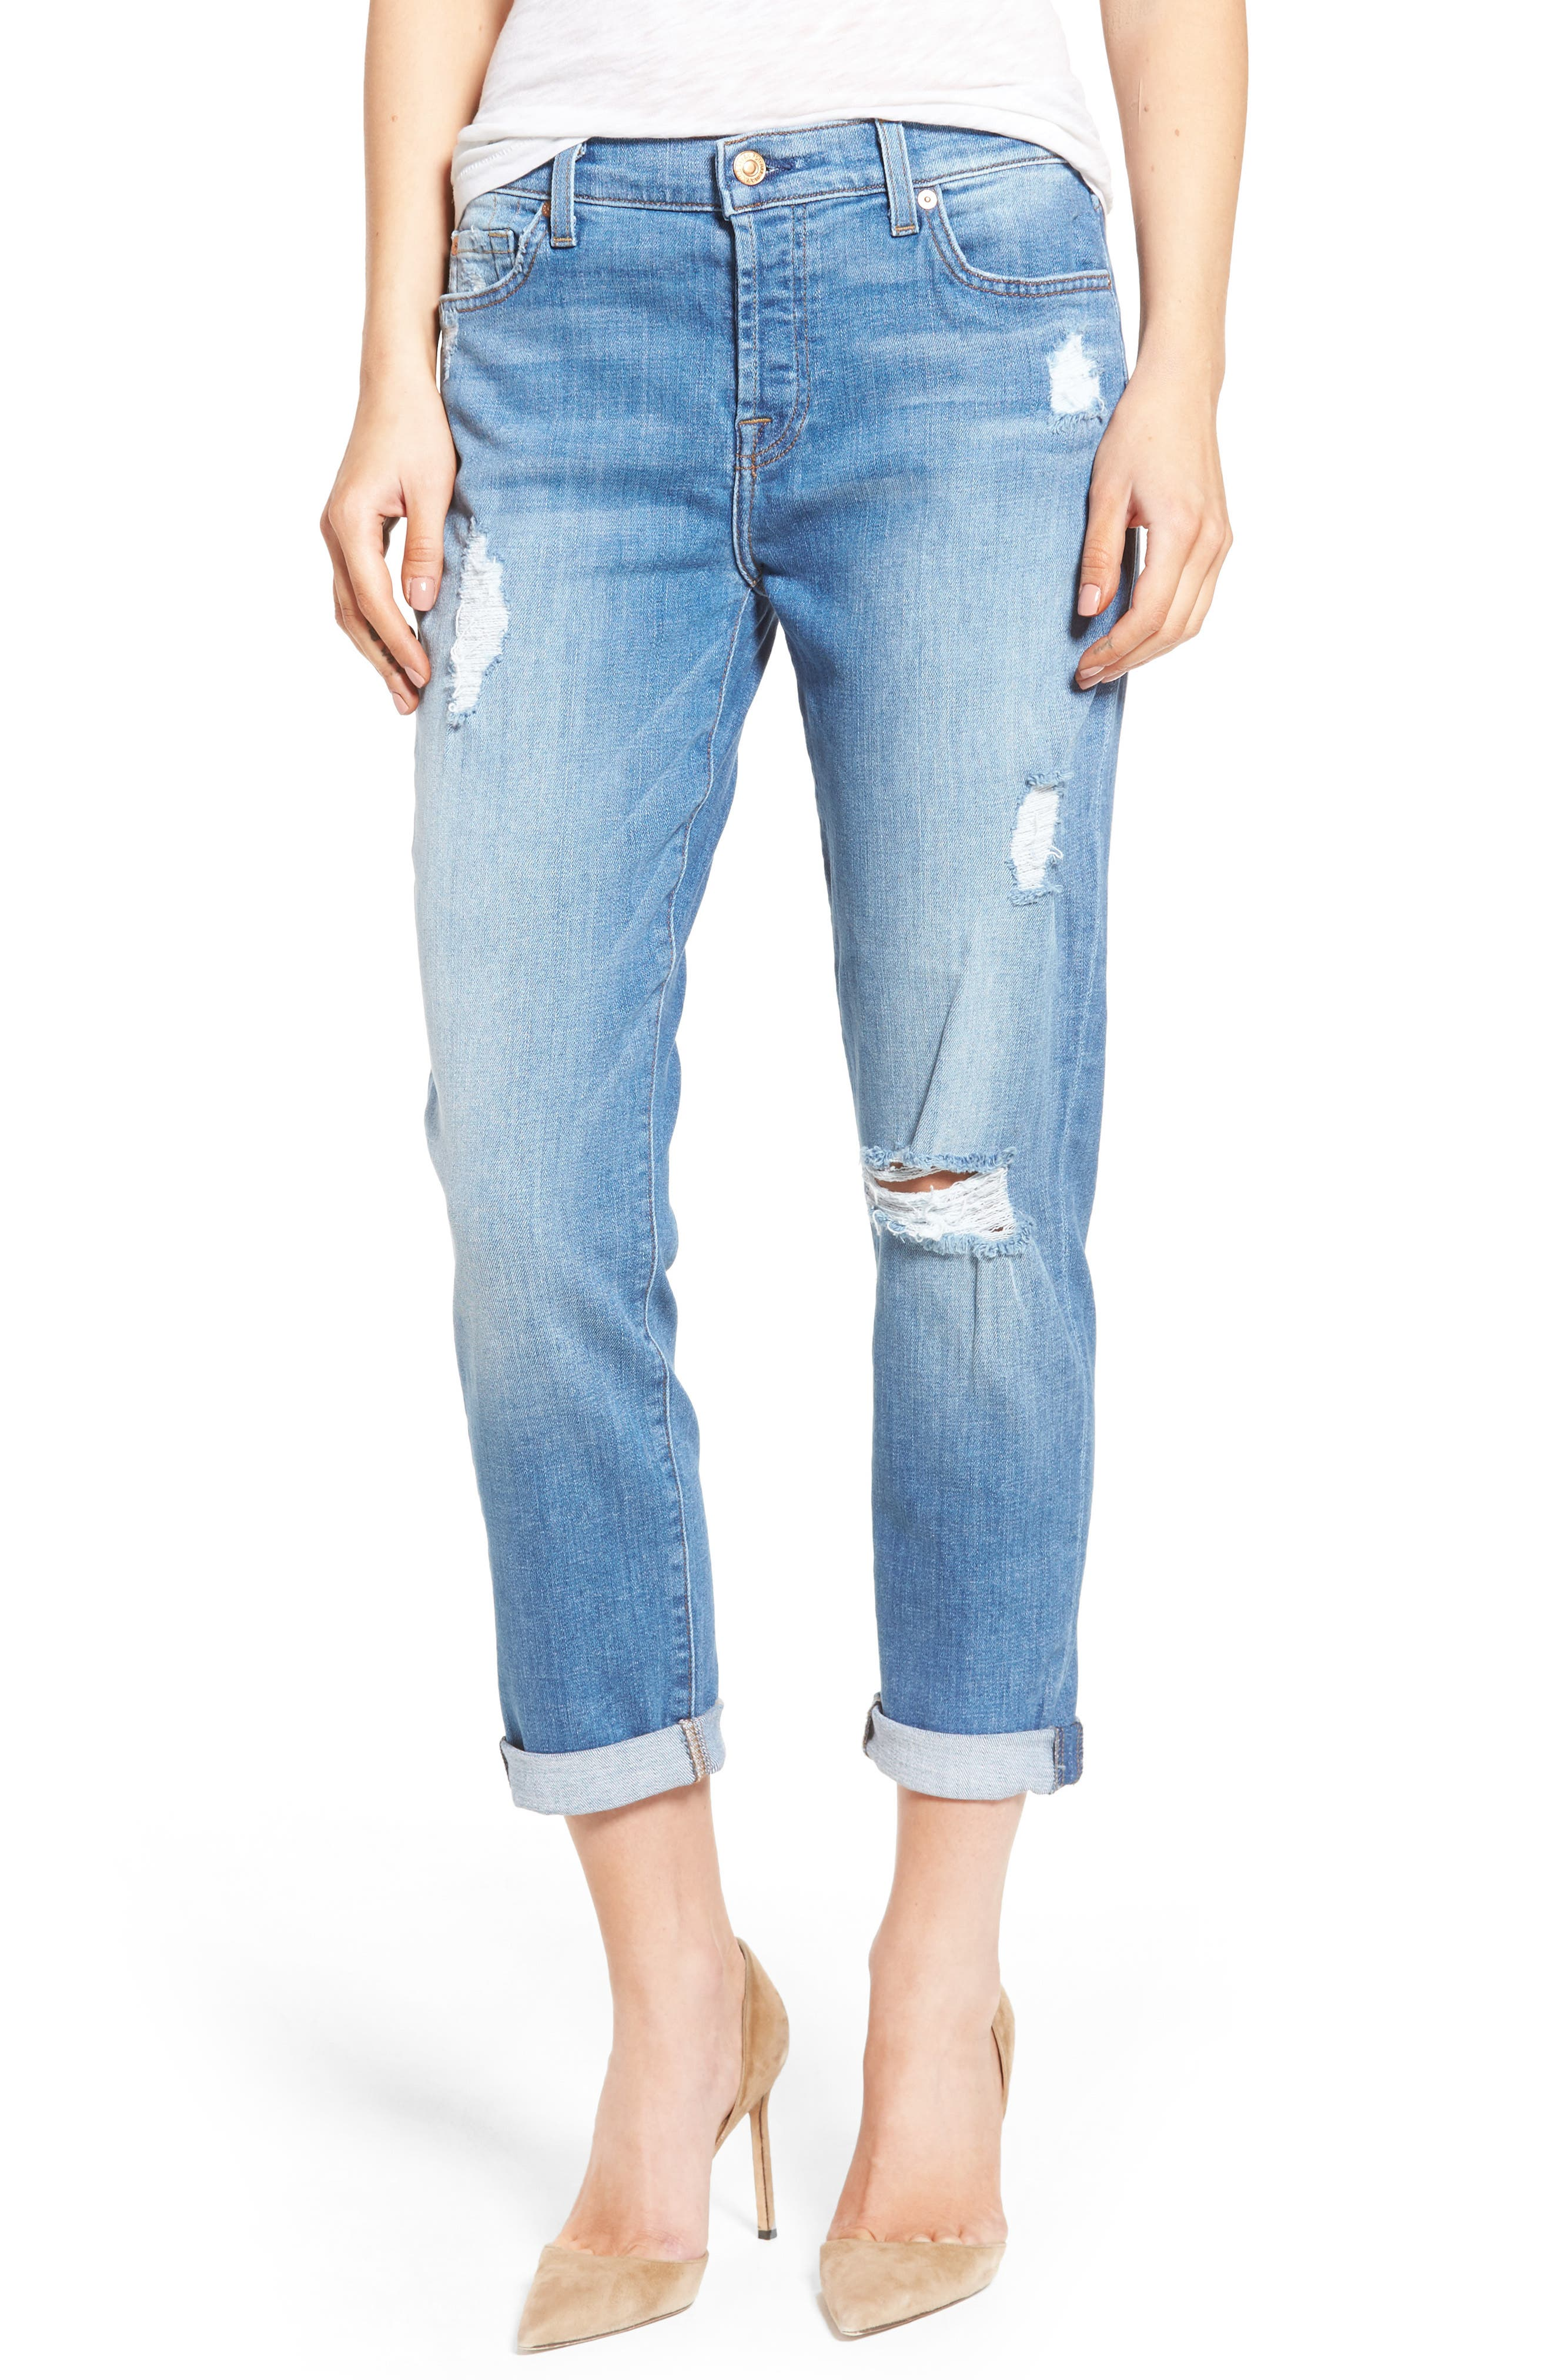 Main Image - 7 For All Mankind® 'Josefina' Mid Rise Boyfriend Jeans (Adelaide Bright Blue 2)